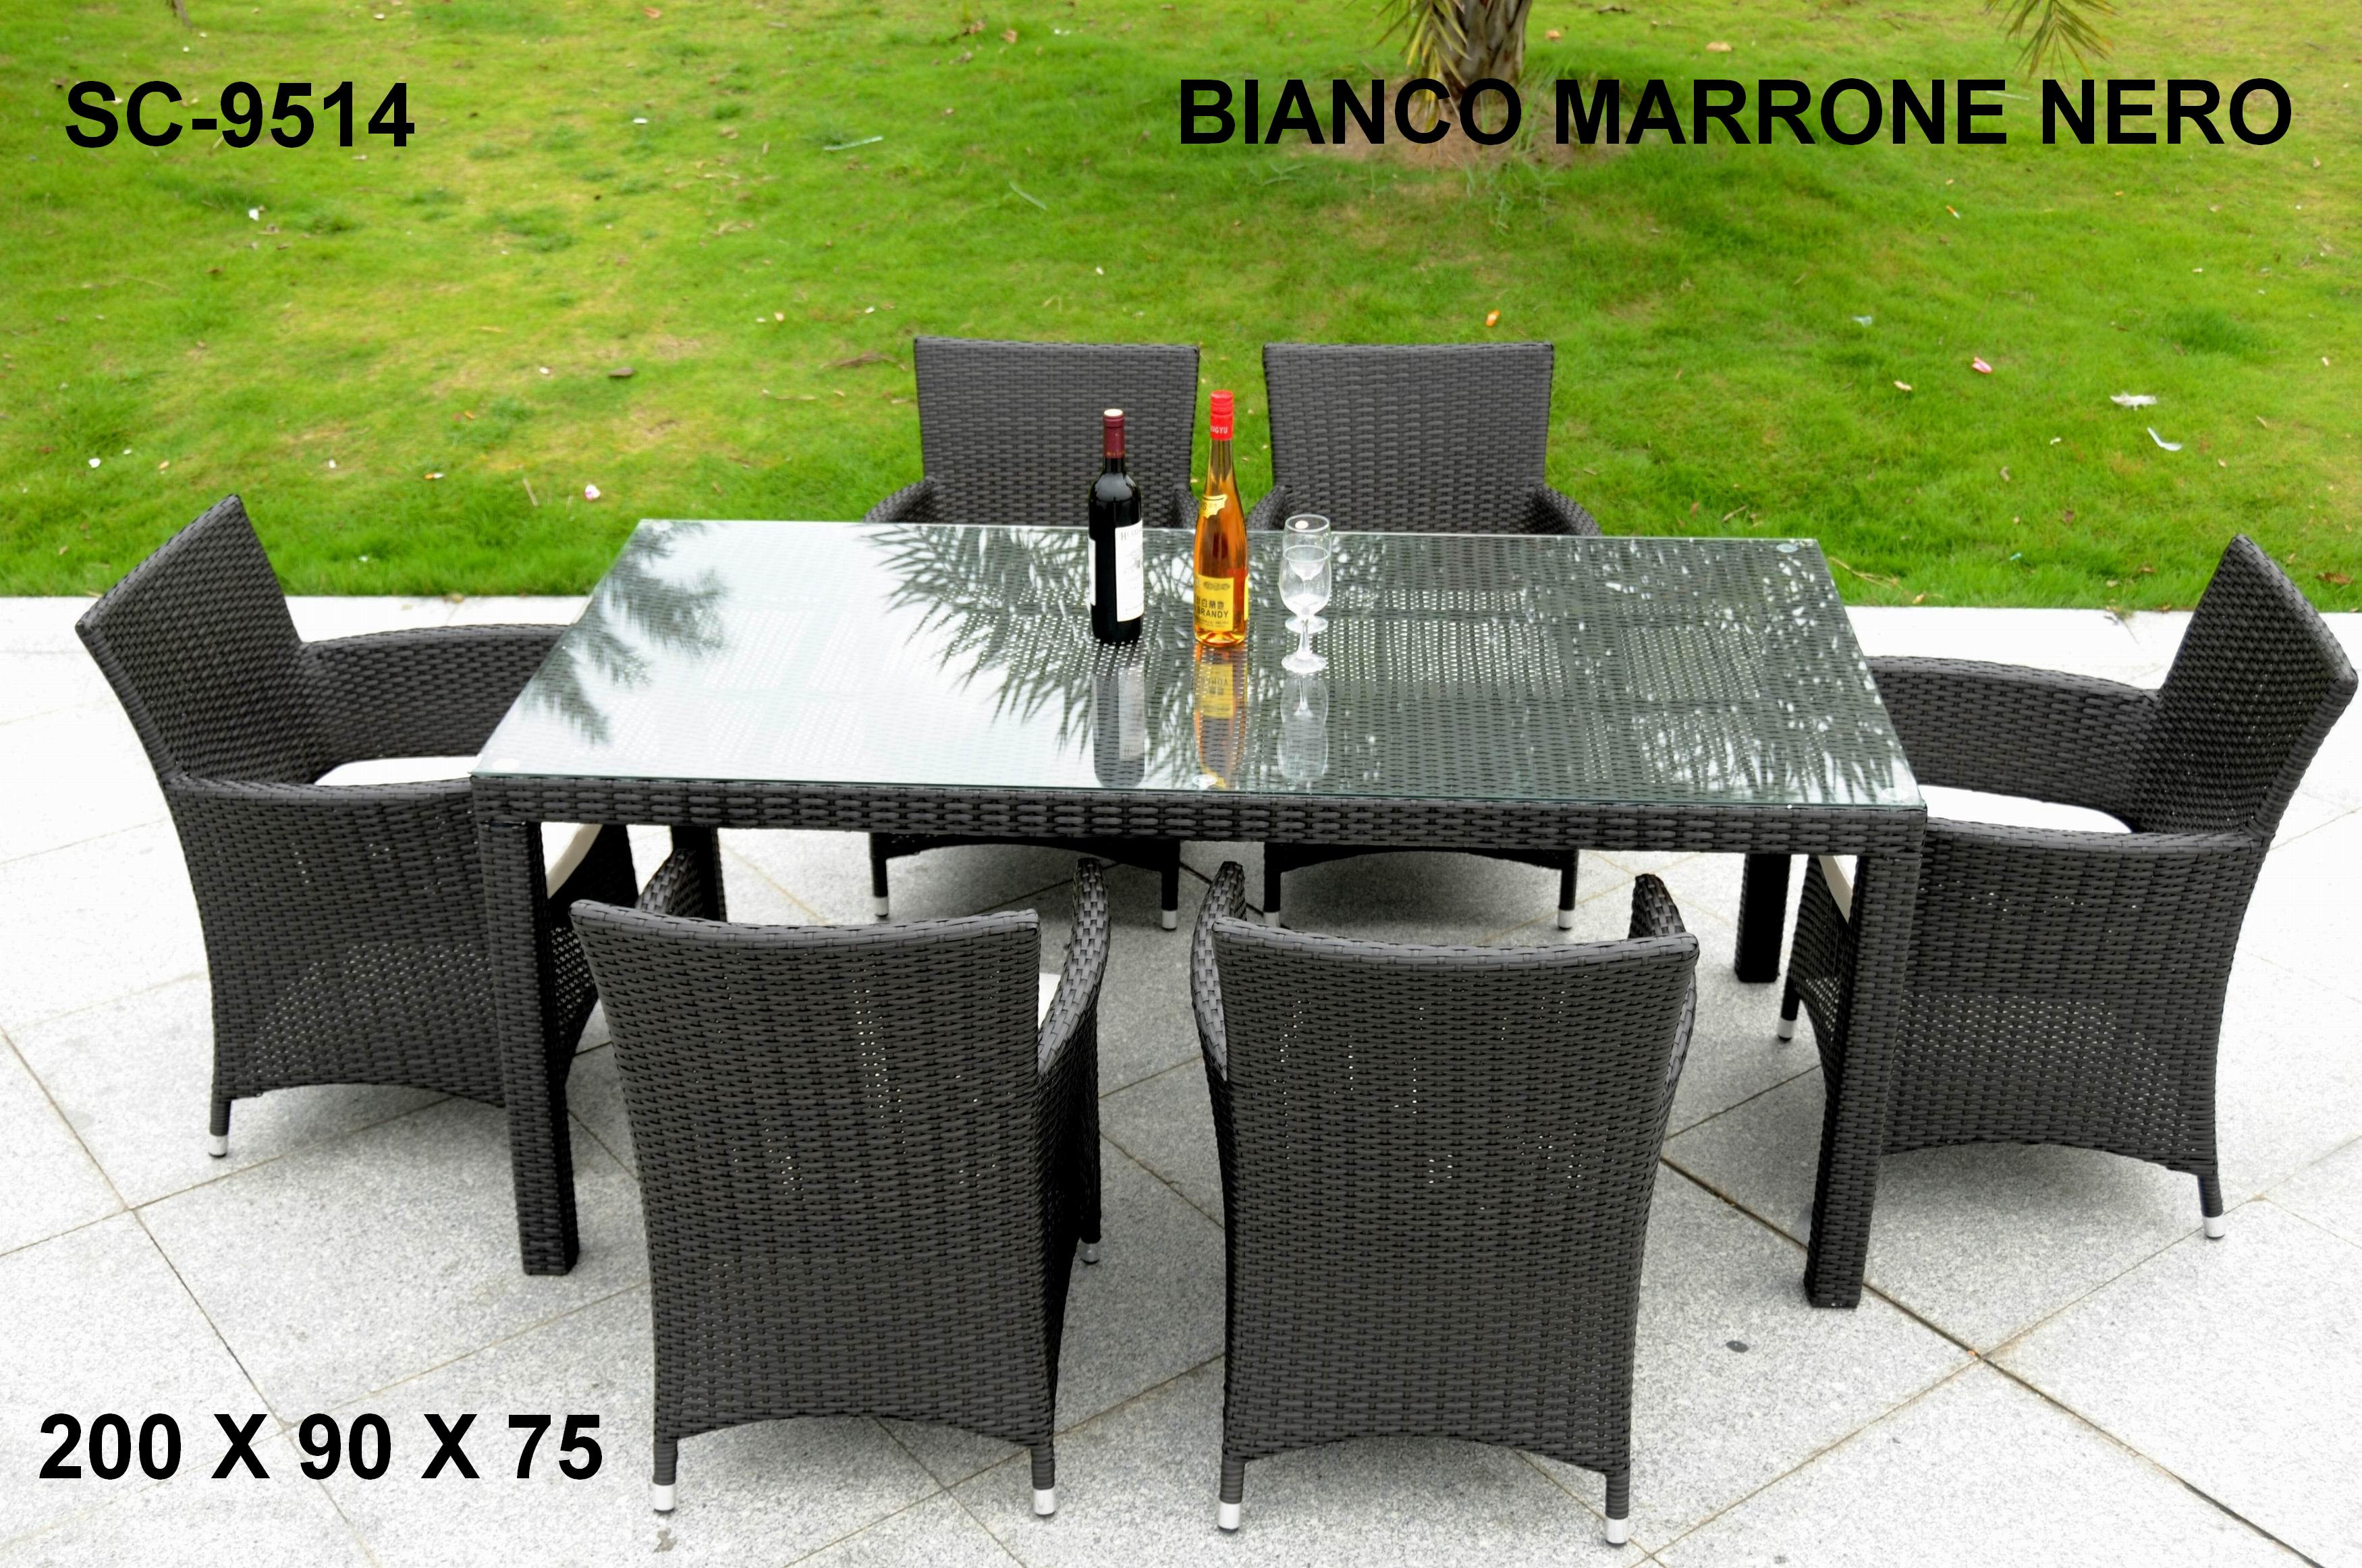 Salotto set da giardino rattan light tete a tete antracite